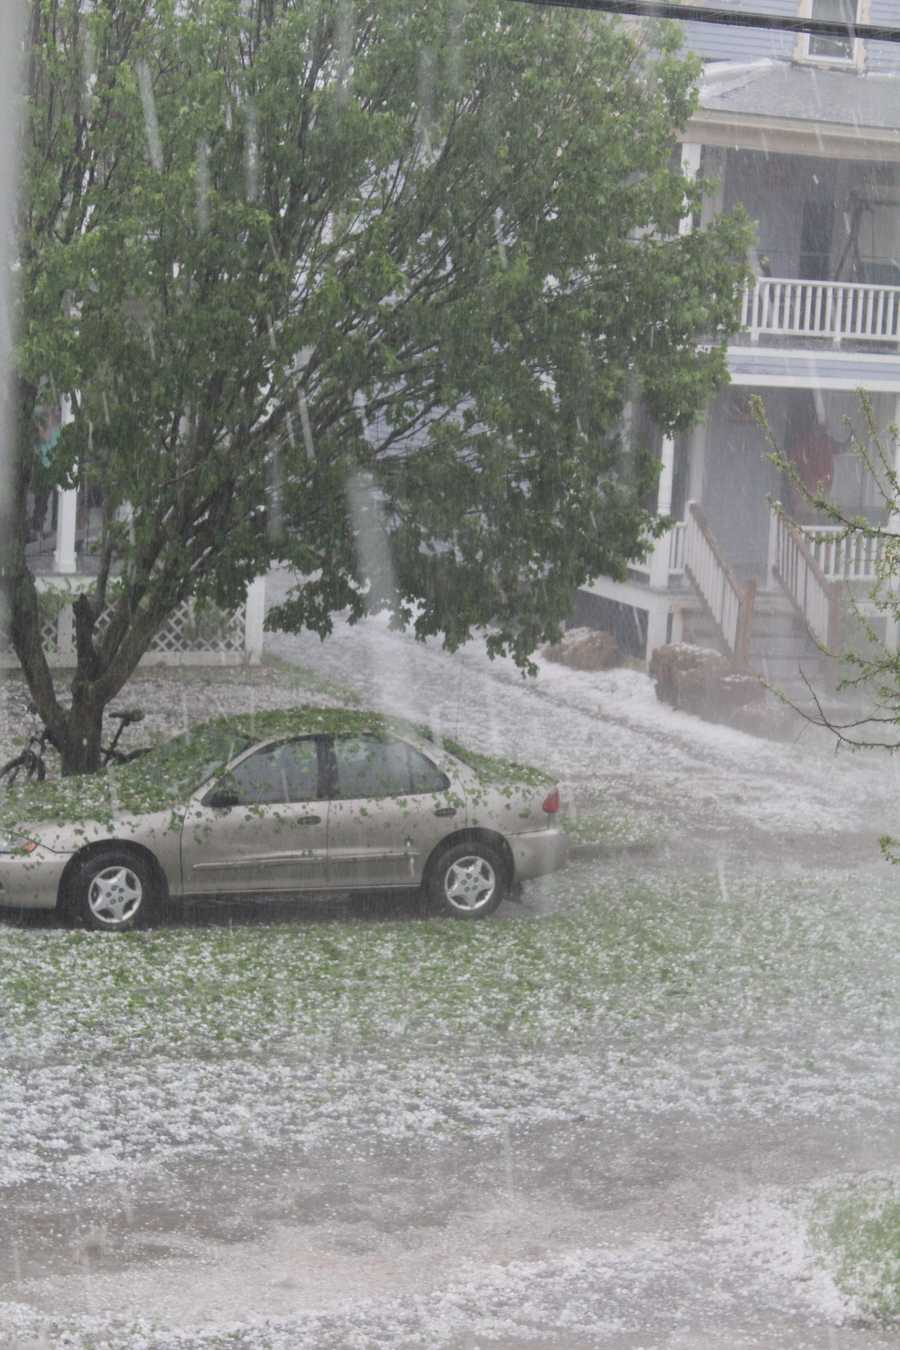 Photos of the hail storm in Rutland, VT on May 27, 2014